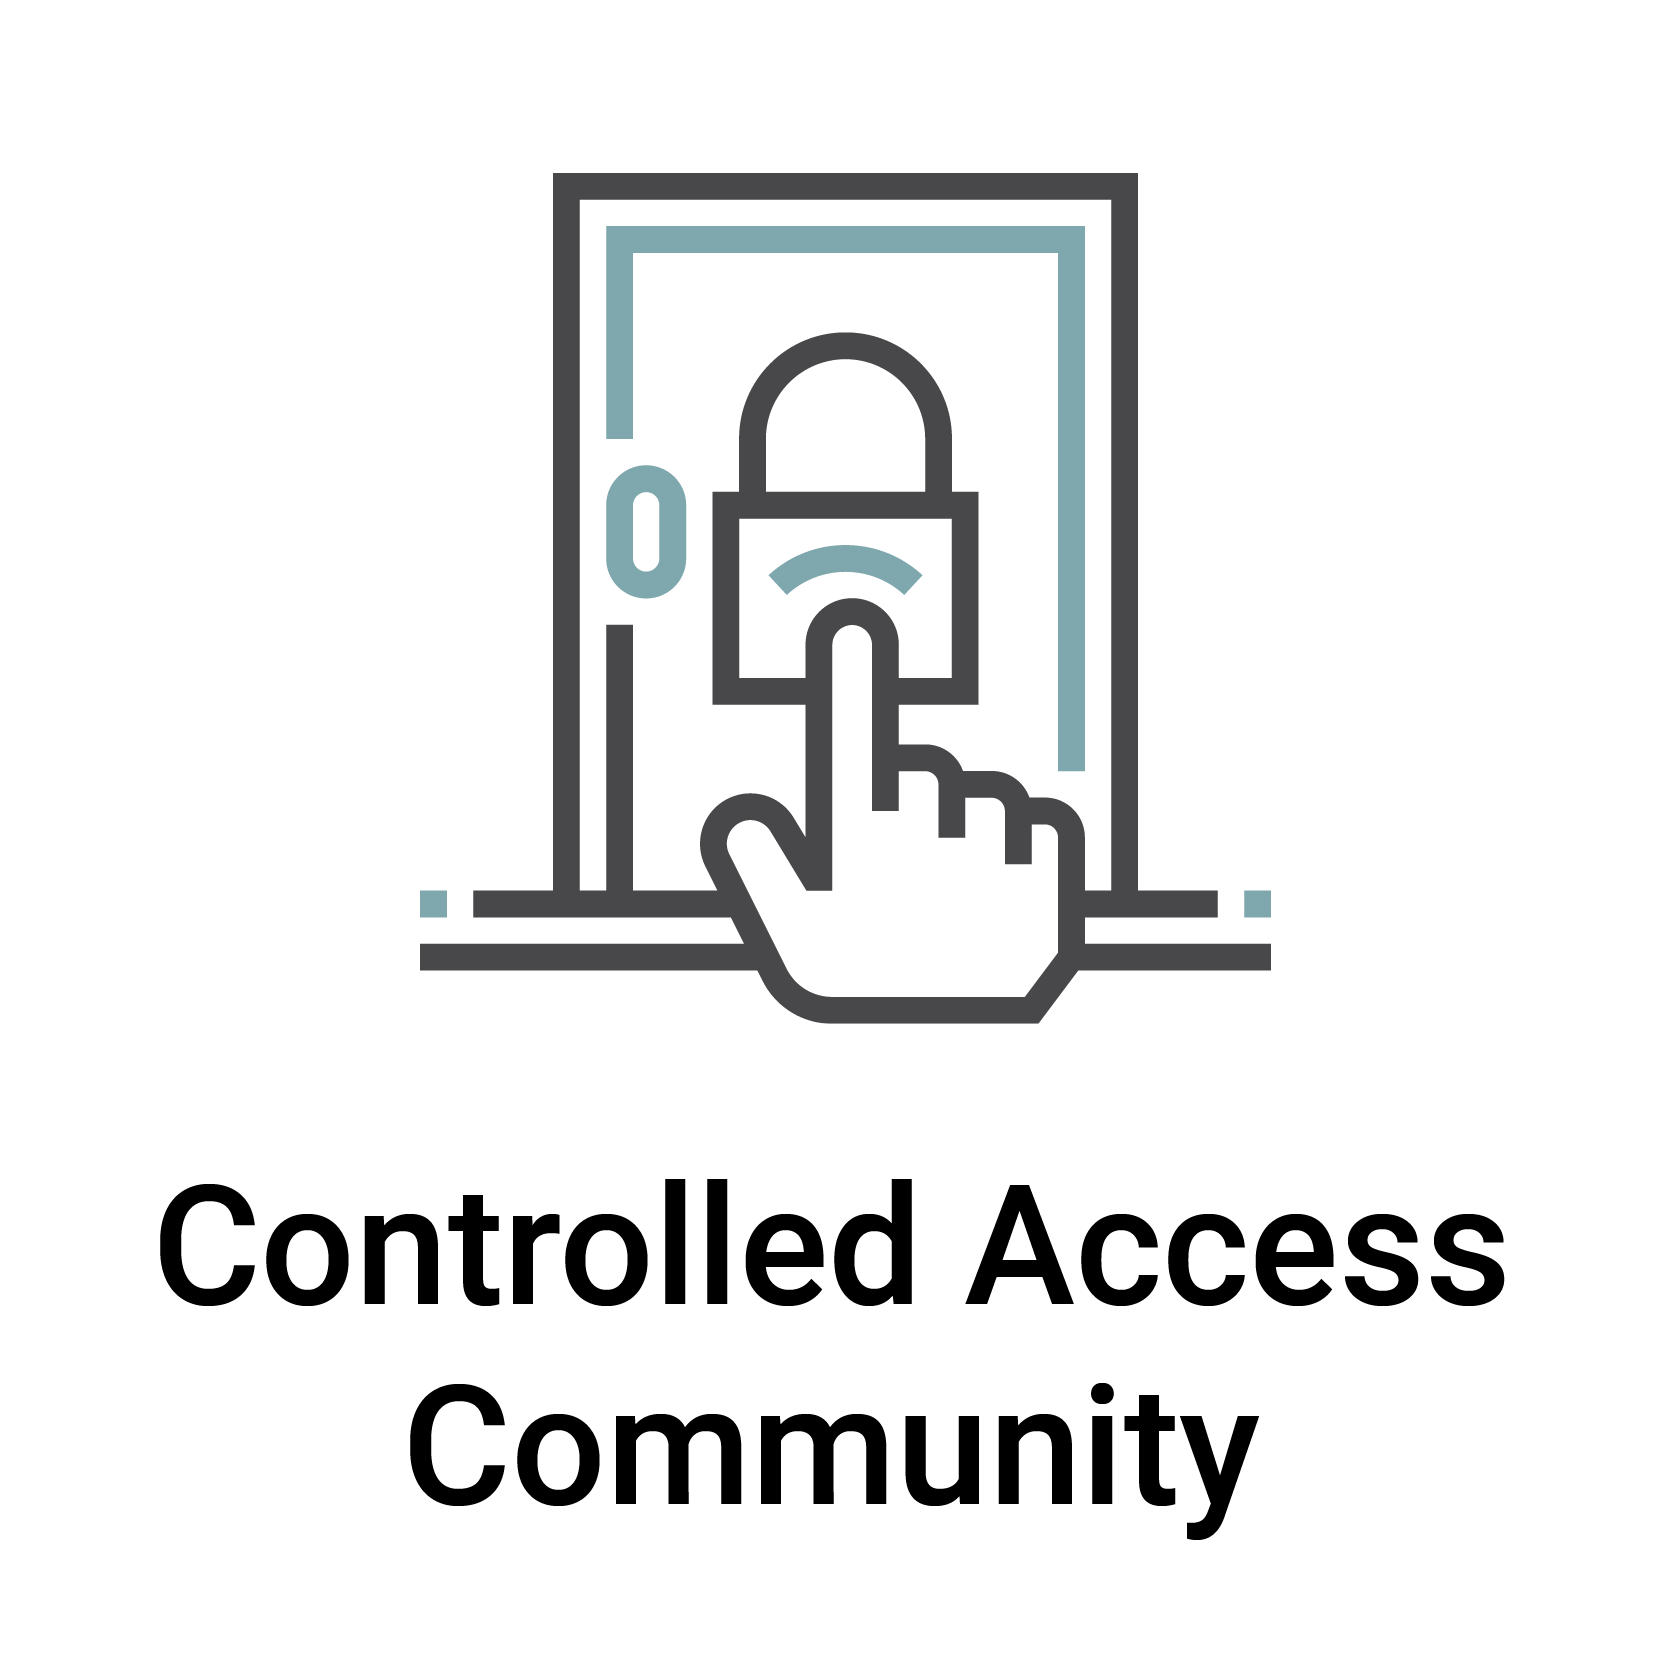 Controlled Access Community